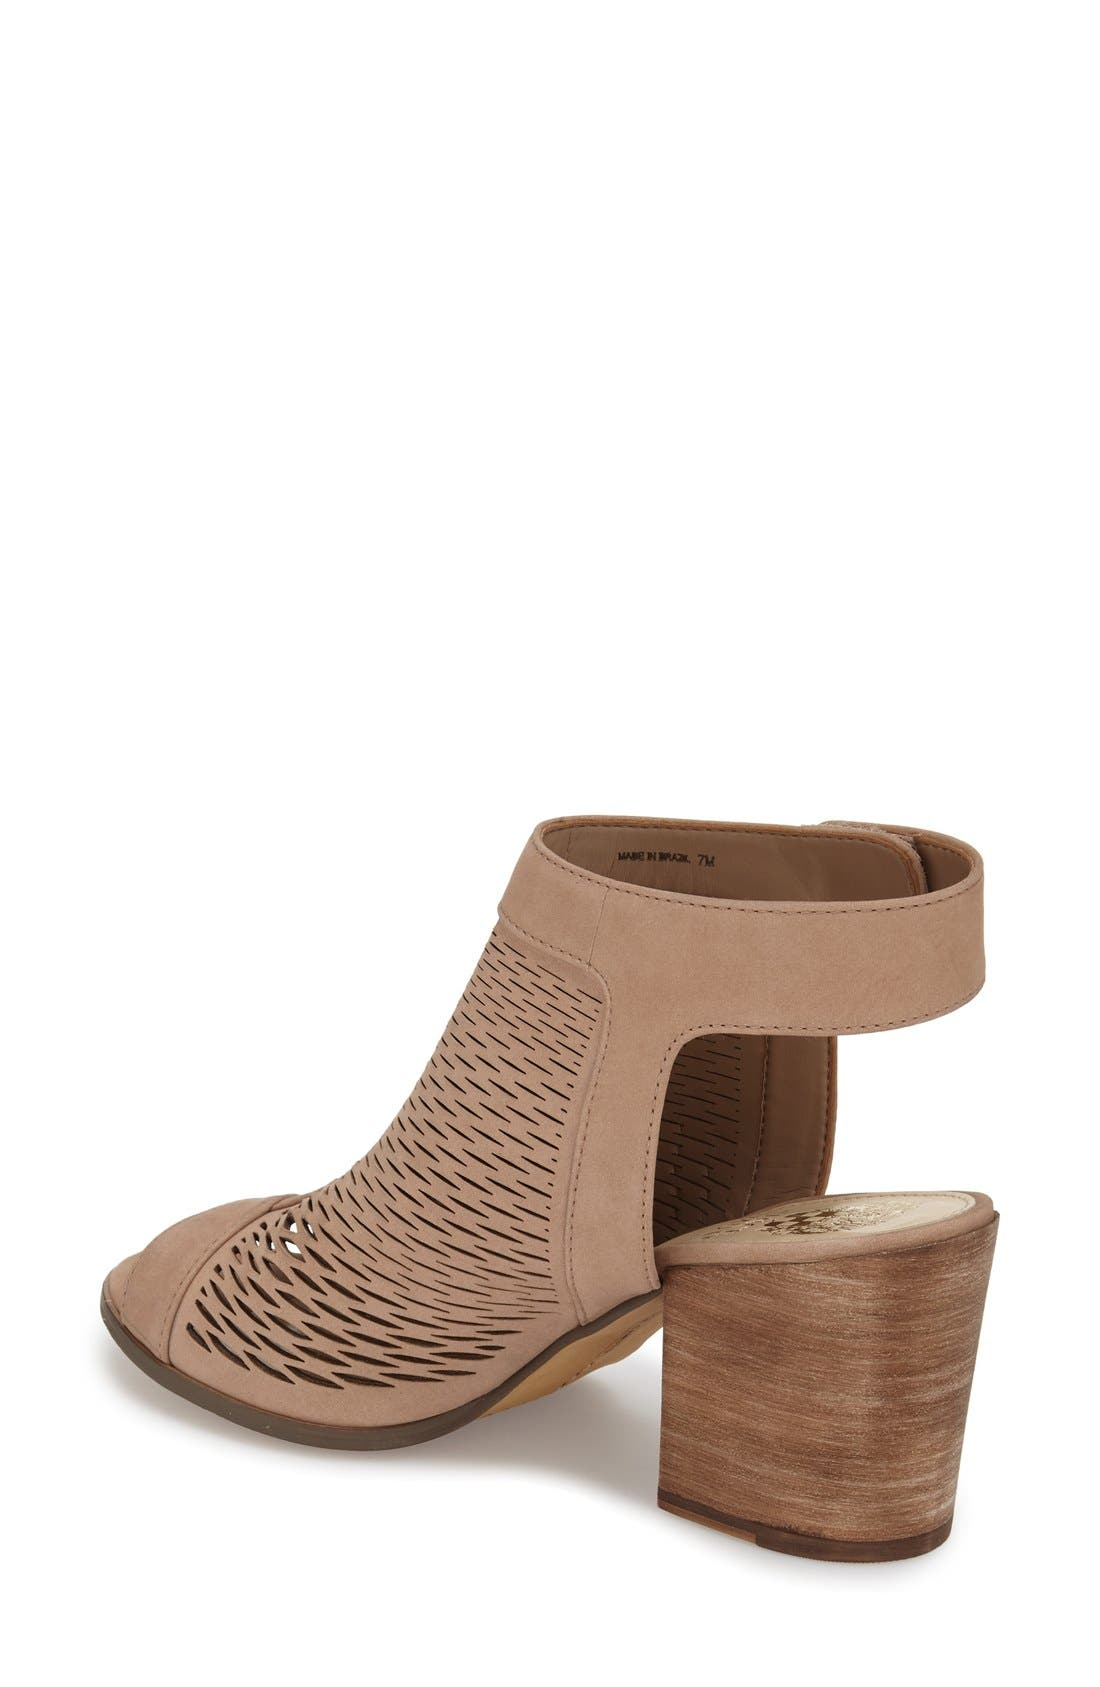 'Lavette' Perforated Peep Toe Bootie,                             Alternate thumbnail 2, color,                             Cashmere